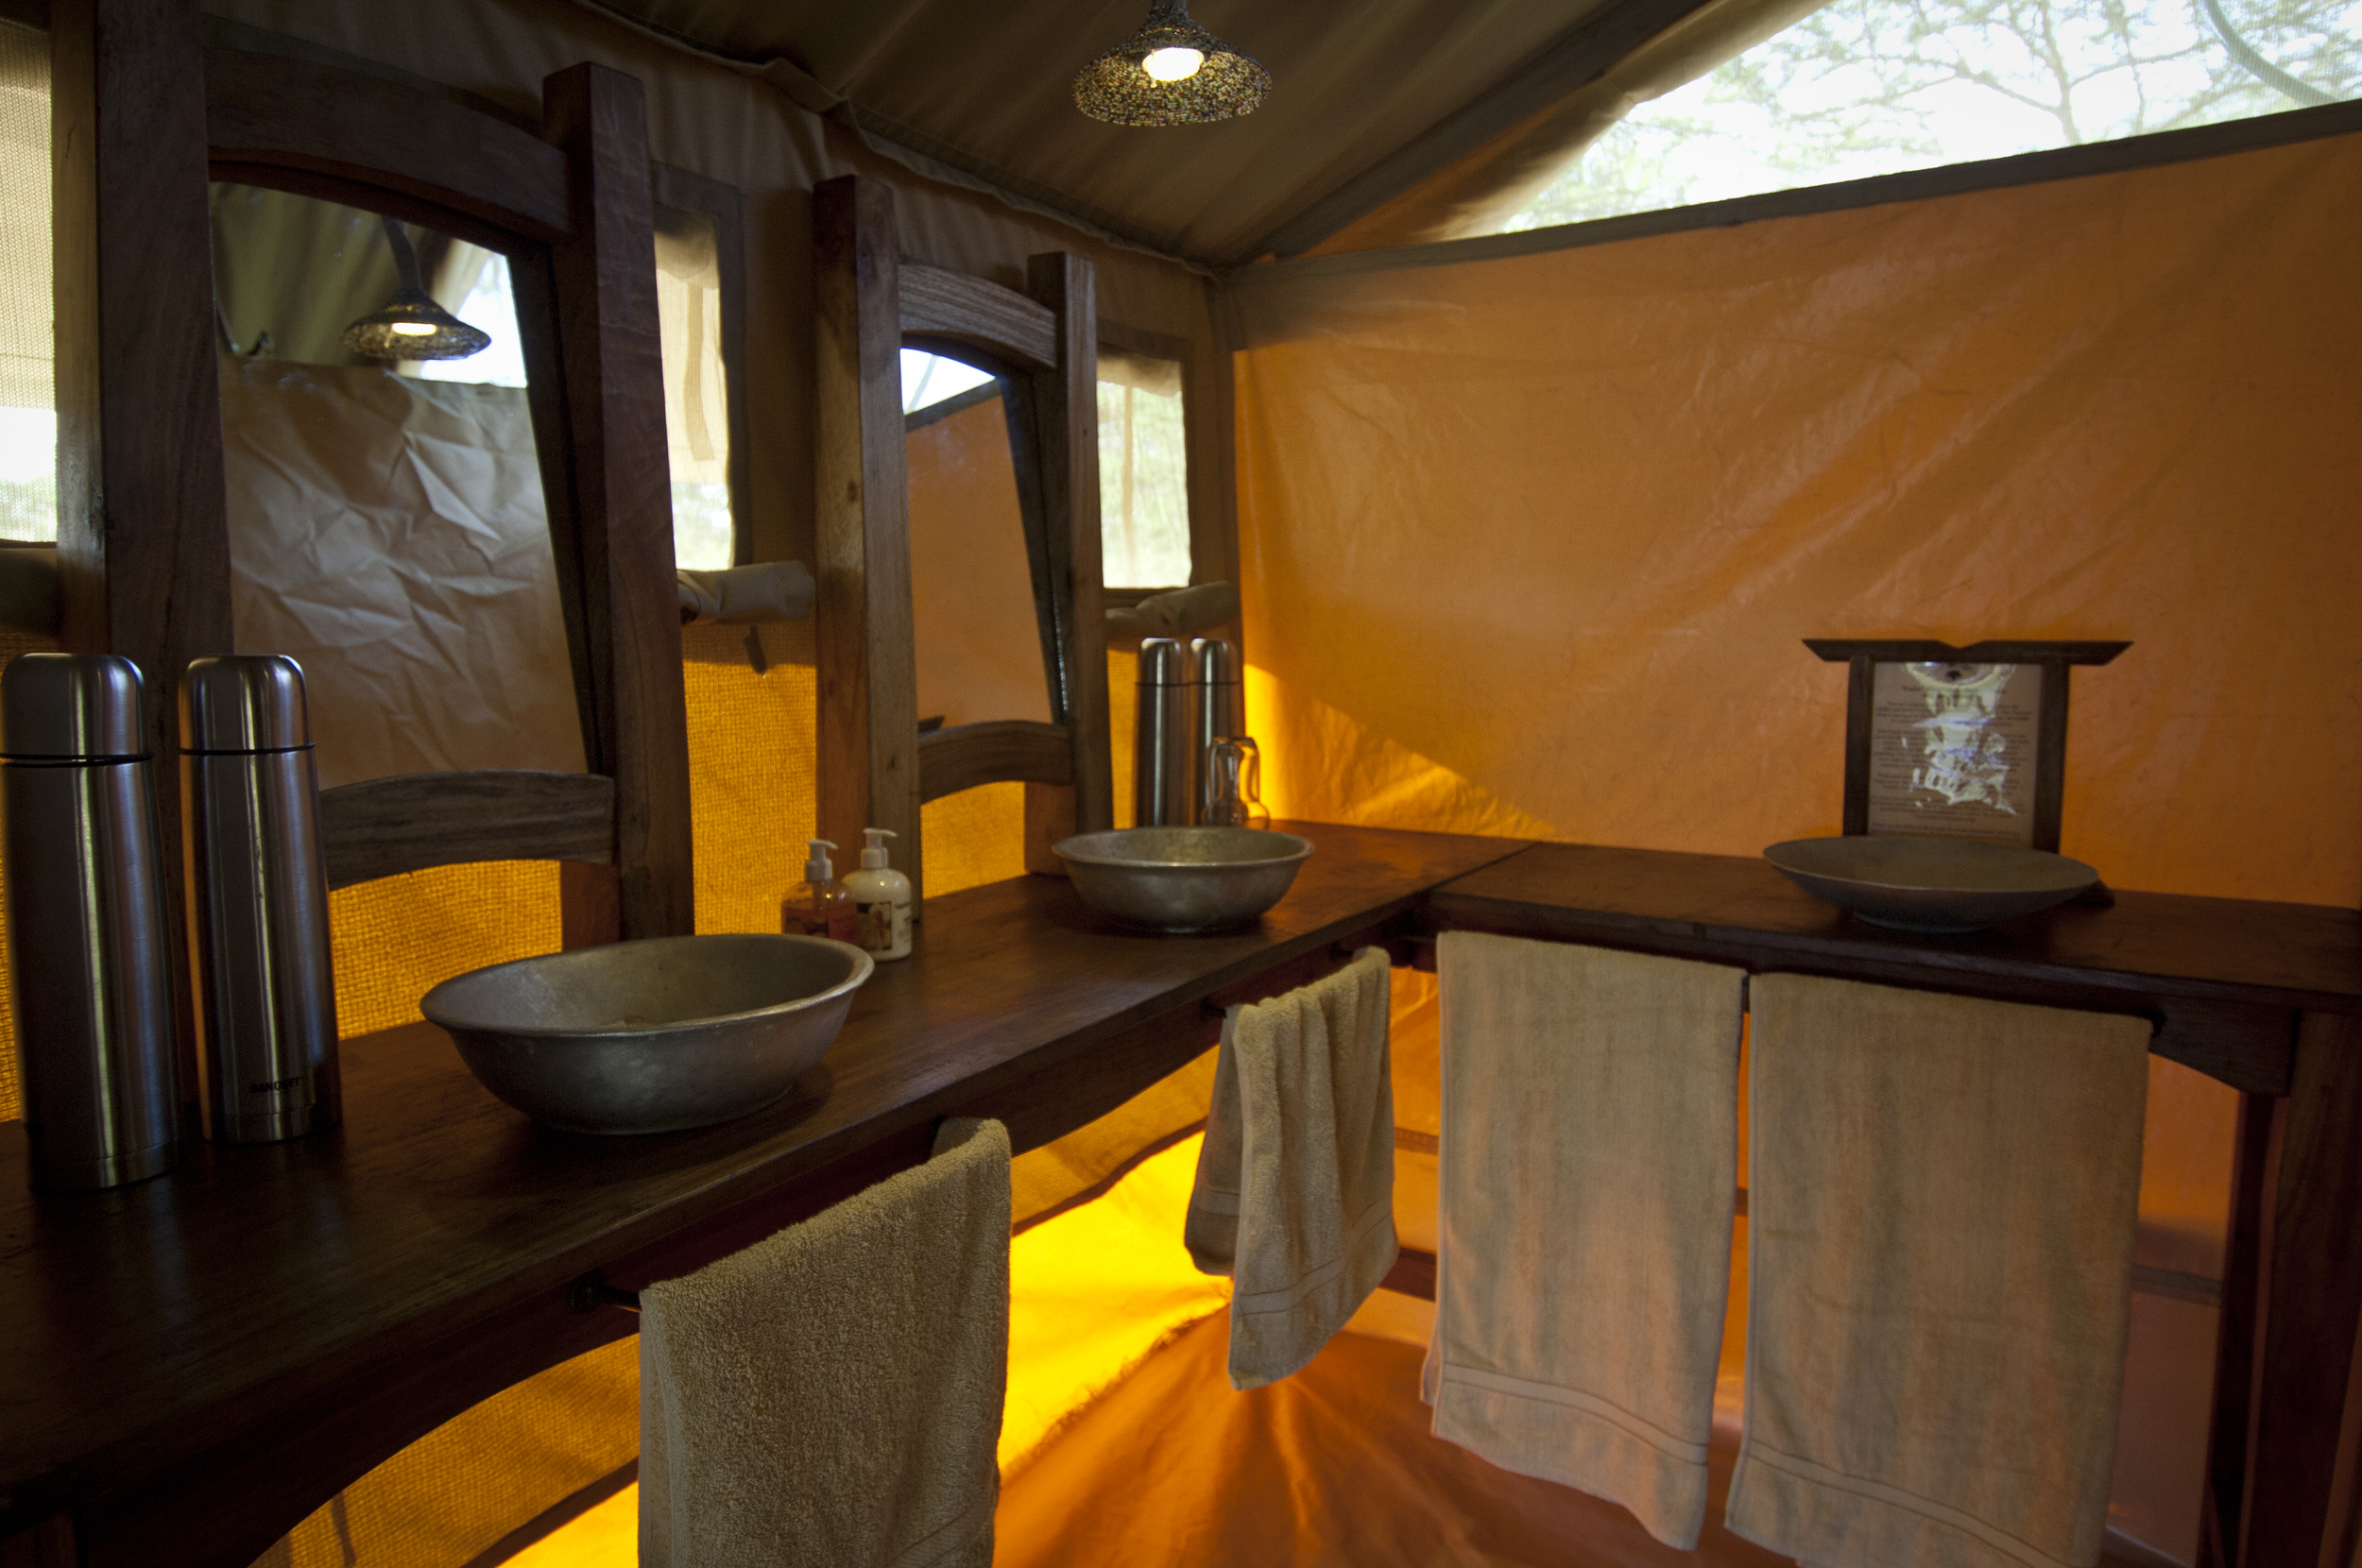 Serengeti seasonal camp - bathroom.jpg